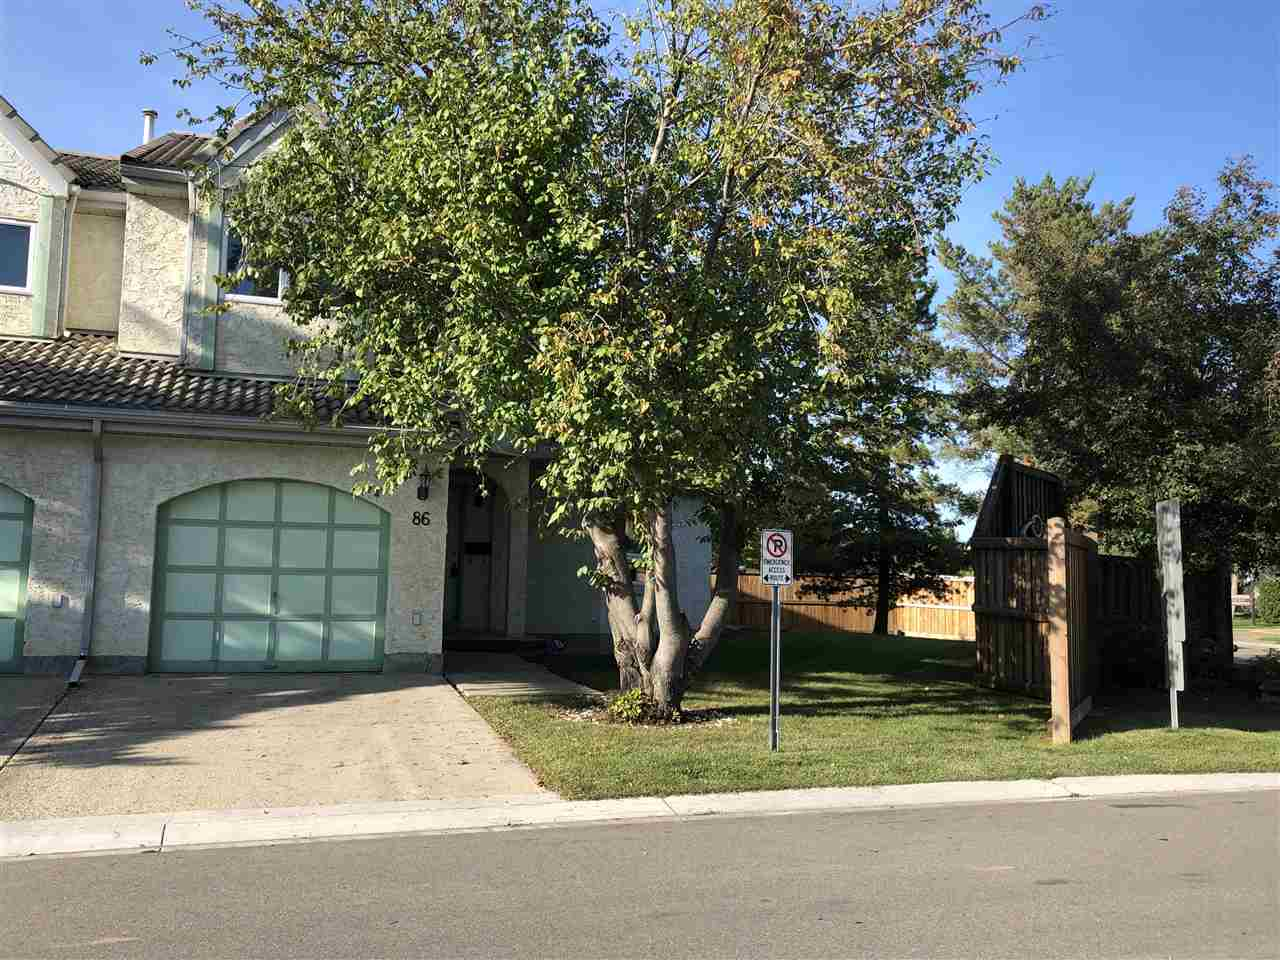 MLS® listing #E4173568 for sale located at 86 9520 174 Street